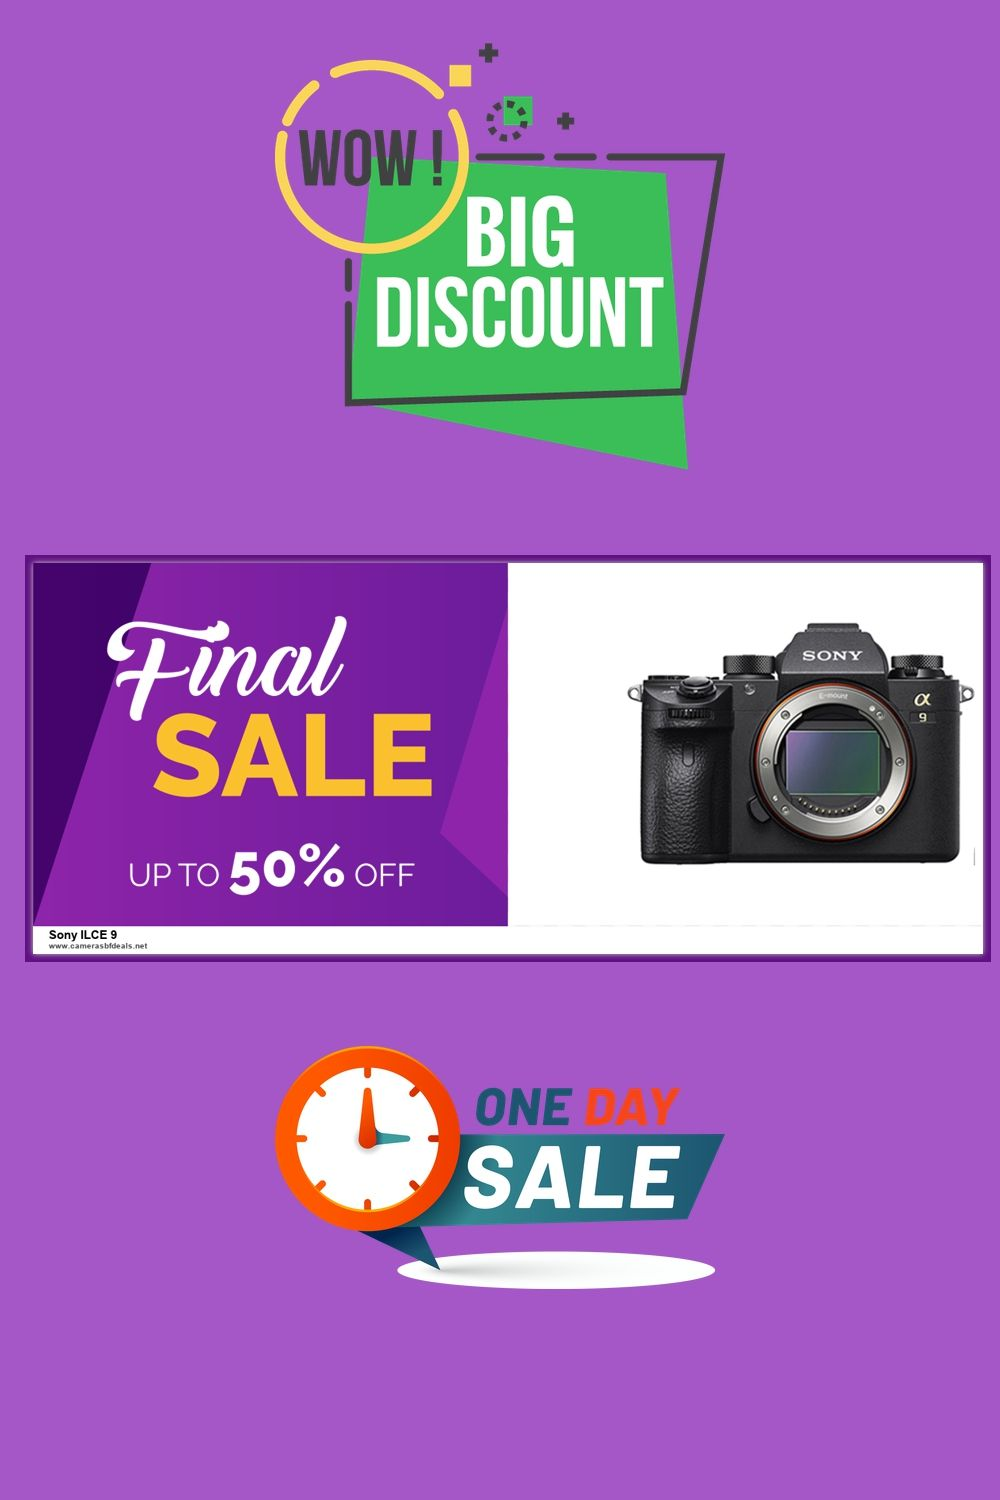 5 Best Sony Ilce 9 Black Friday Deals Up To 30 Discount 2020 In 2020 Black Friday Sony Black Friday Deals